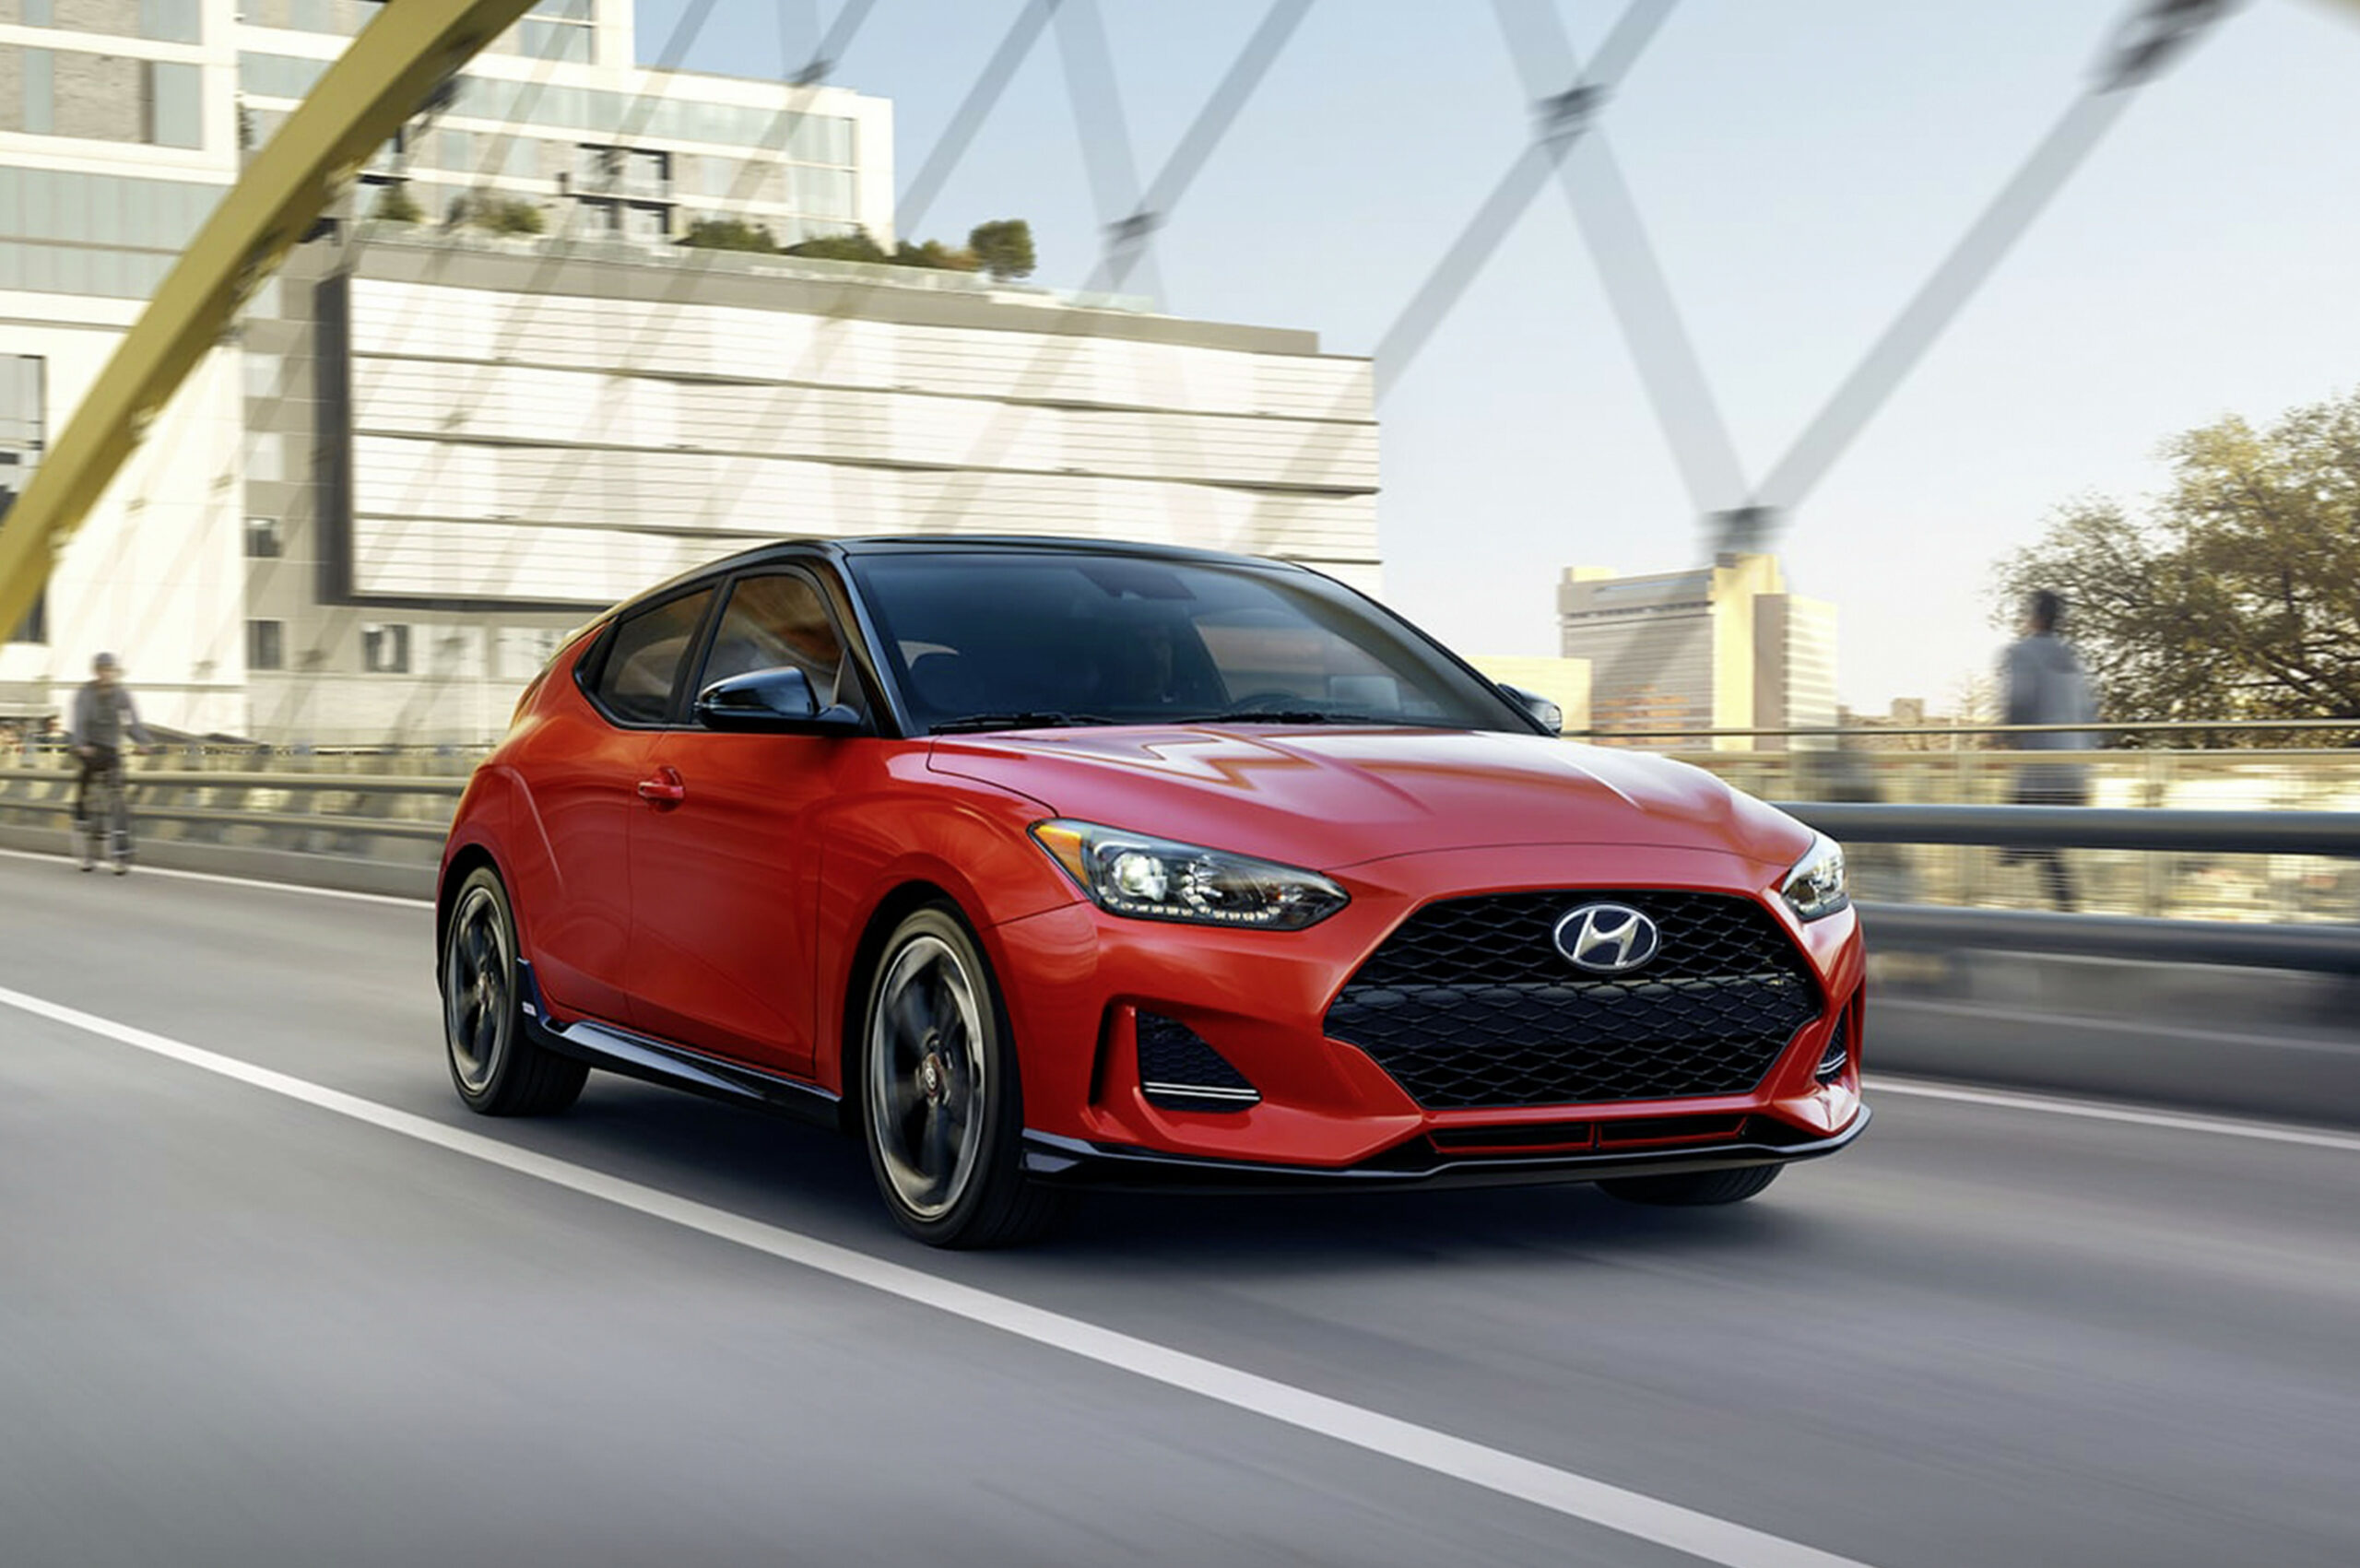 6 Hyundai Veloster Review, Pricing, and Specs - 2020 hyundai veloster price